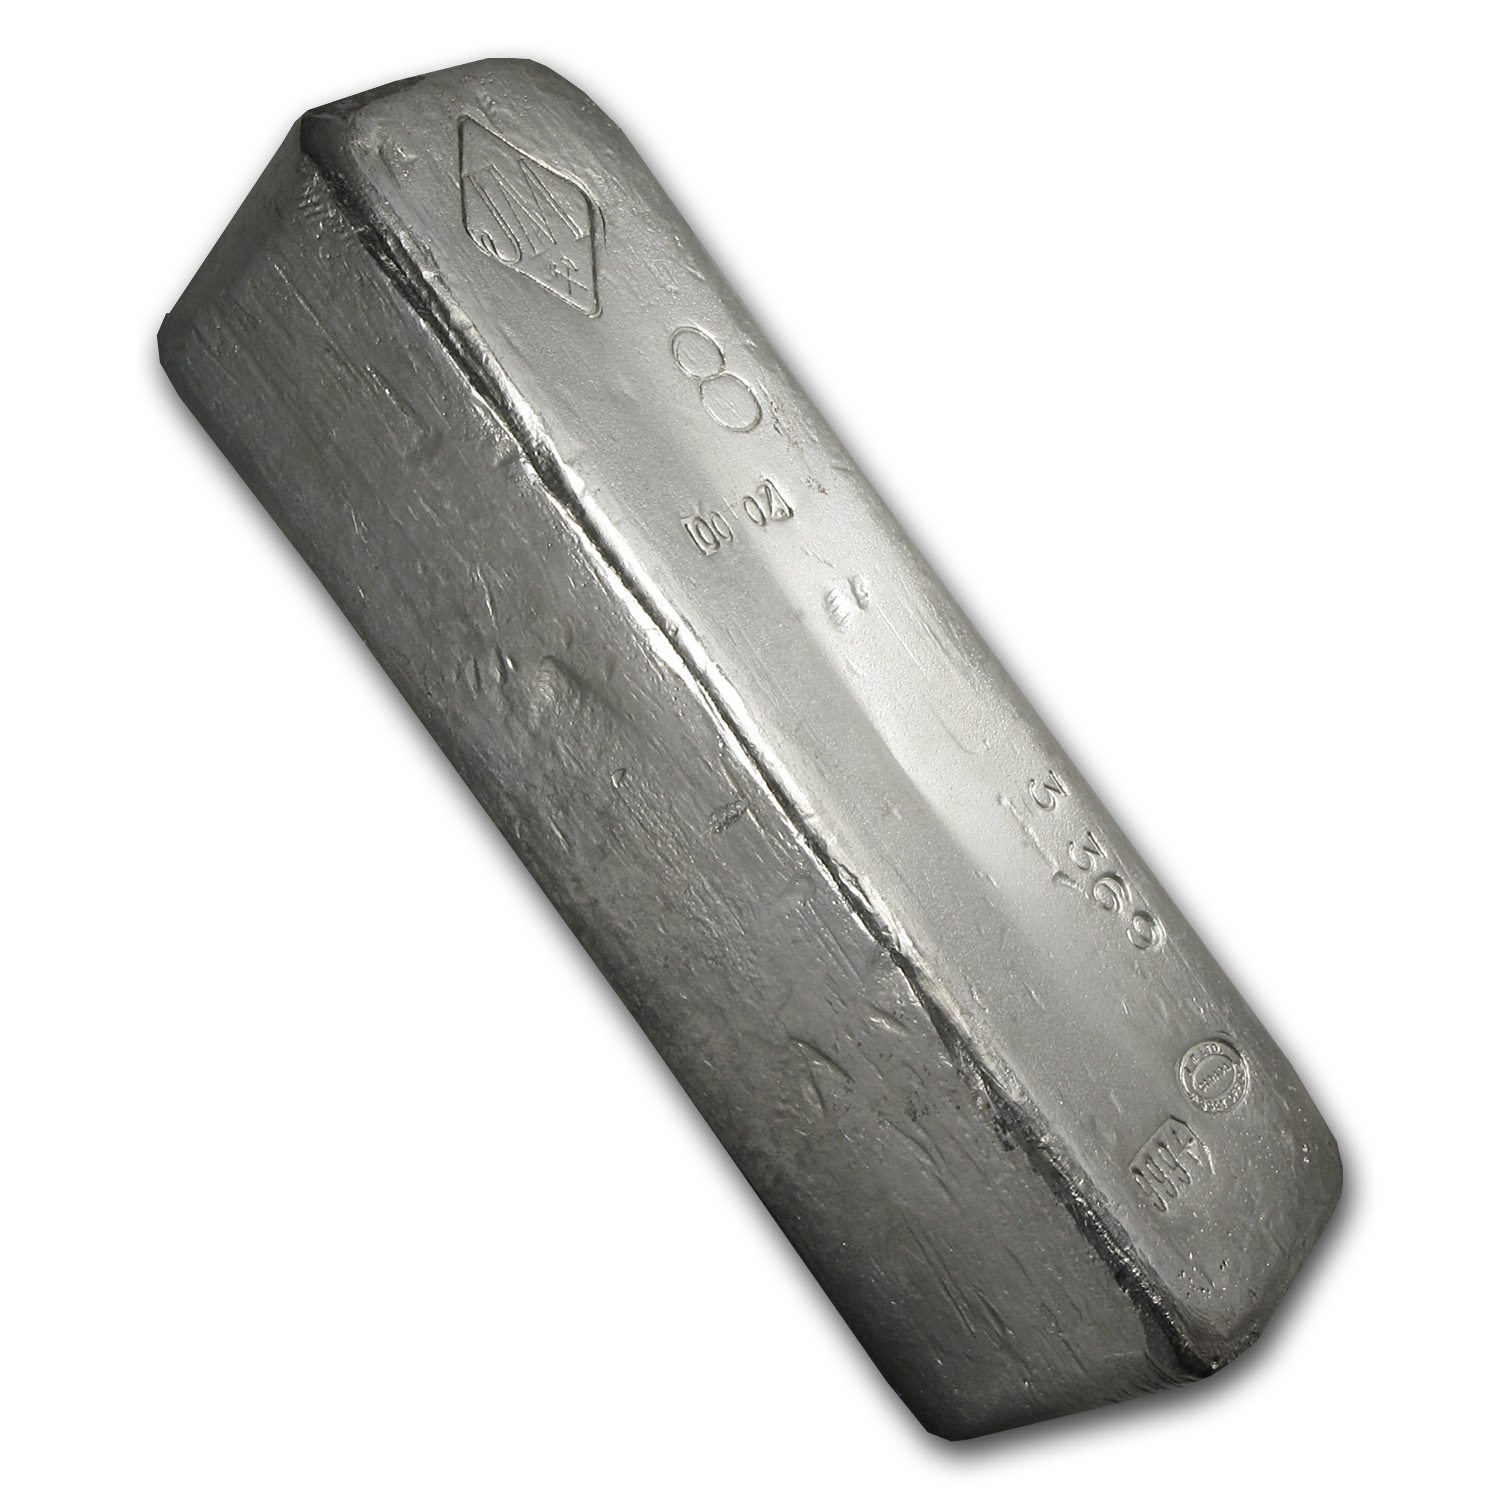 100 oz Silver Bar - Johnson Matthey (Canada, Vintage, Large 8)